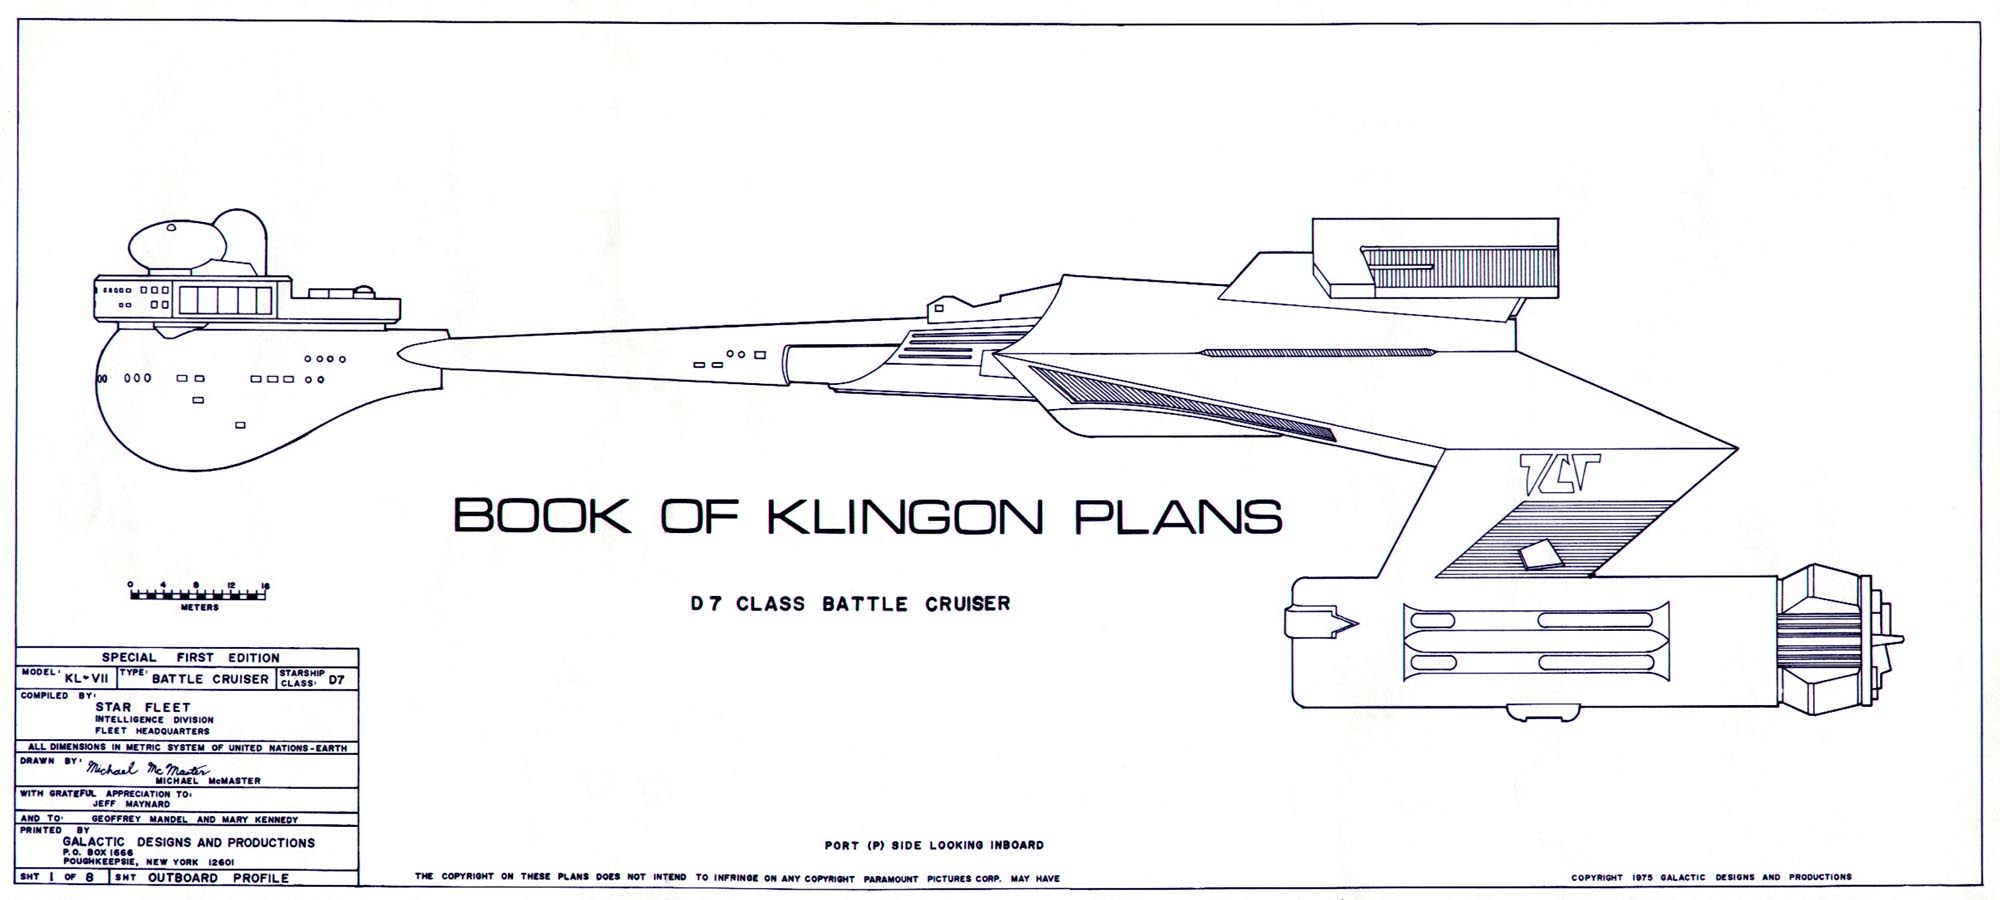 book-of-klingon-plans-sheet-1.jpg